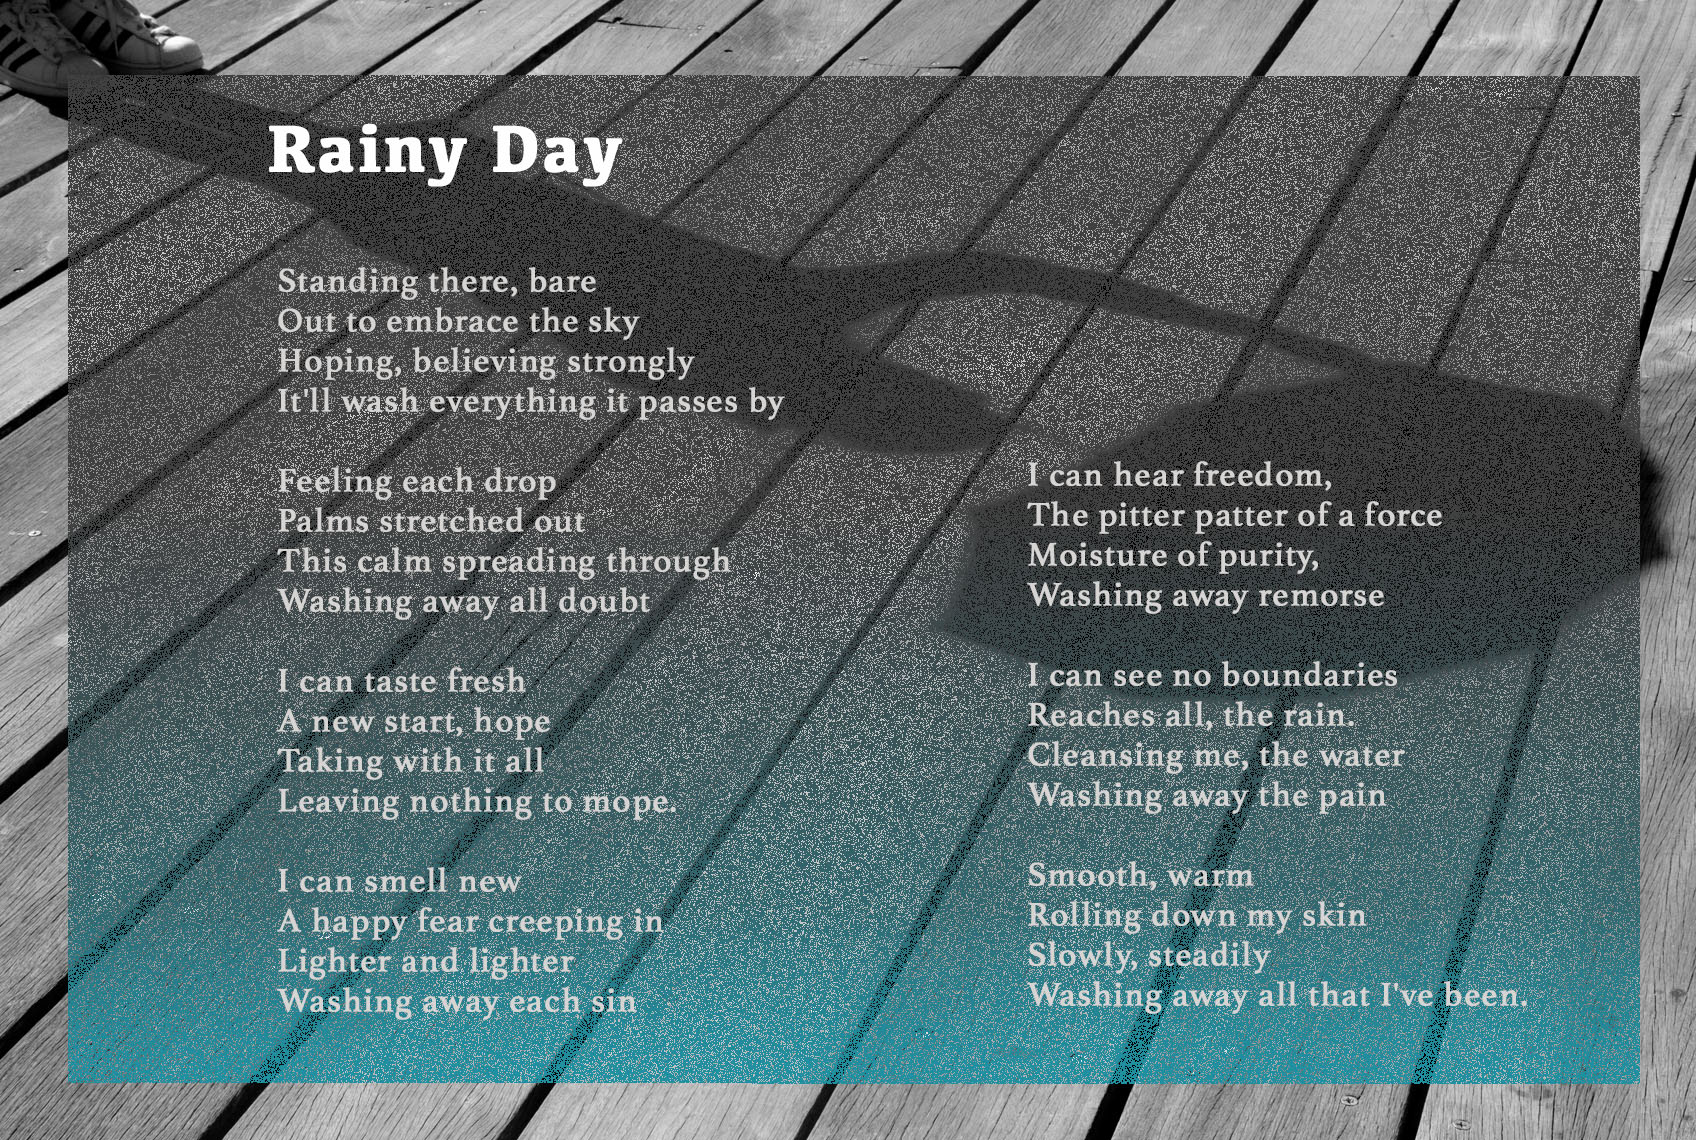 rainy_day_personal_project2.jpg